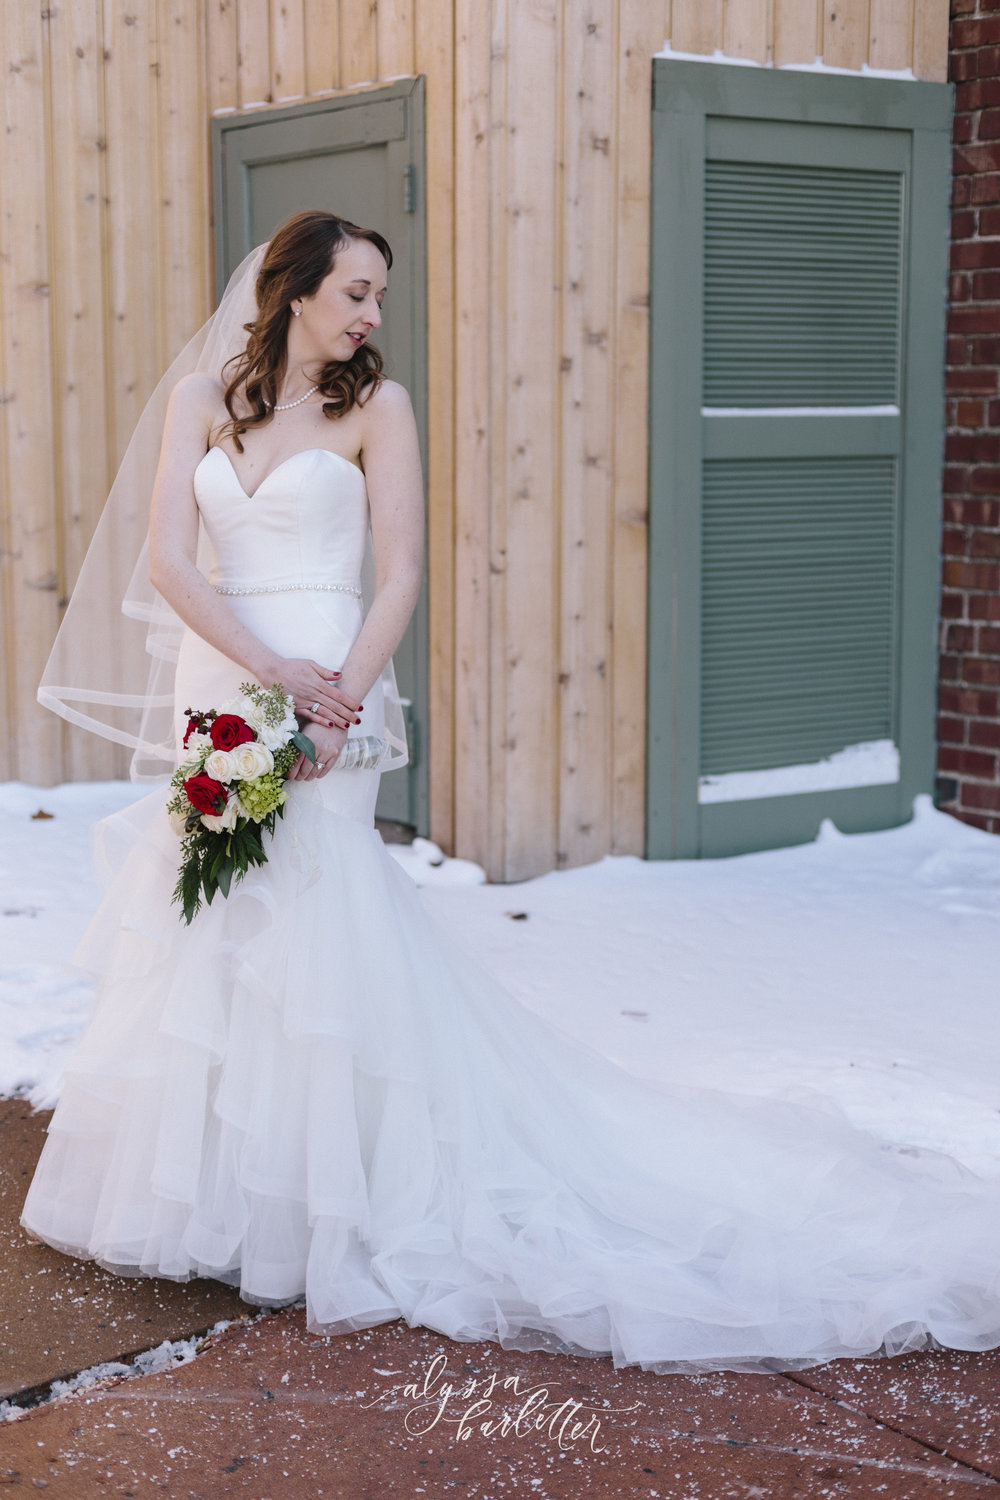 alyssa barletter photography photographer californos winter wedding christmas green snow cold-1-21.jpg